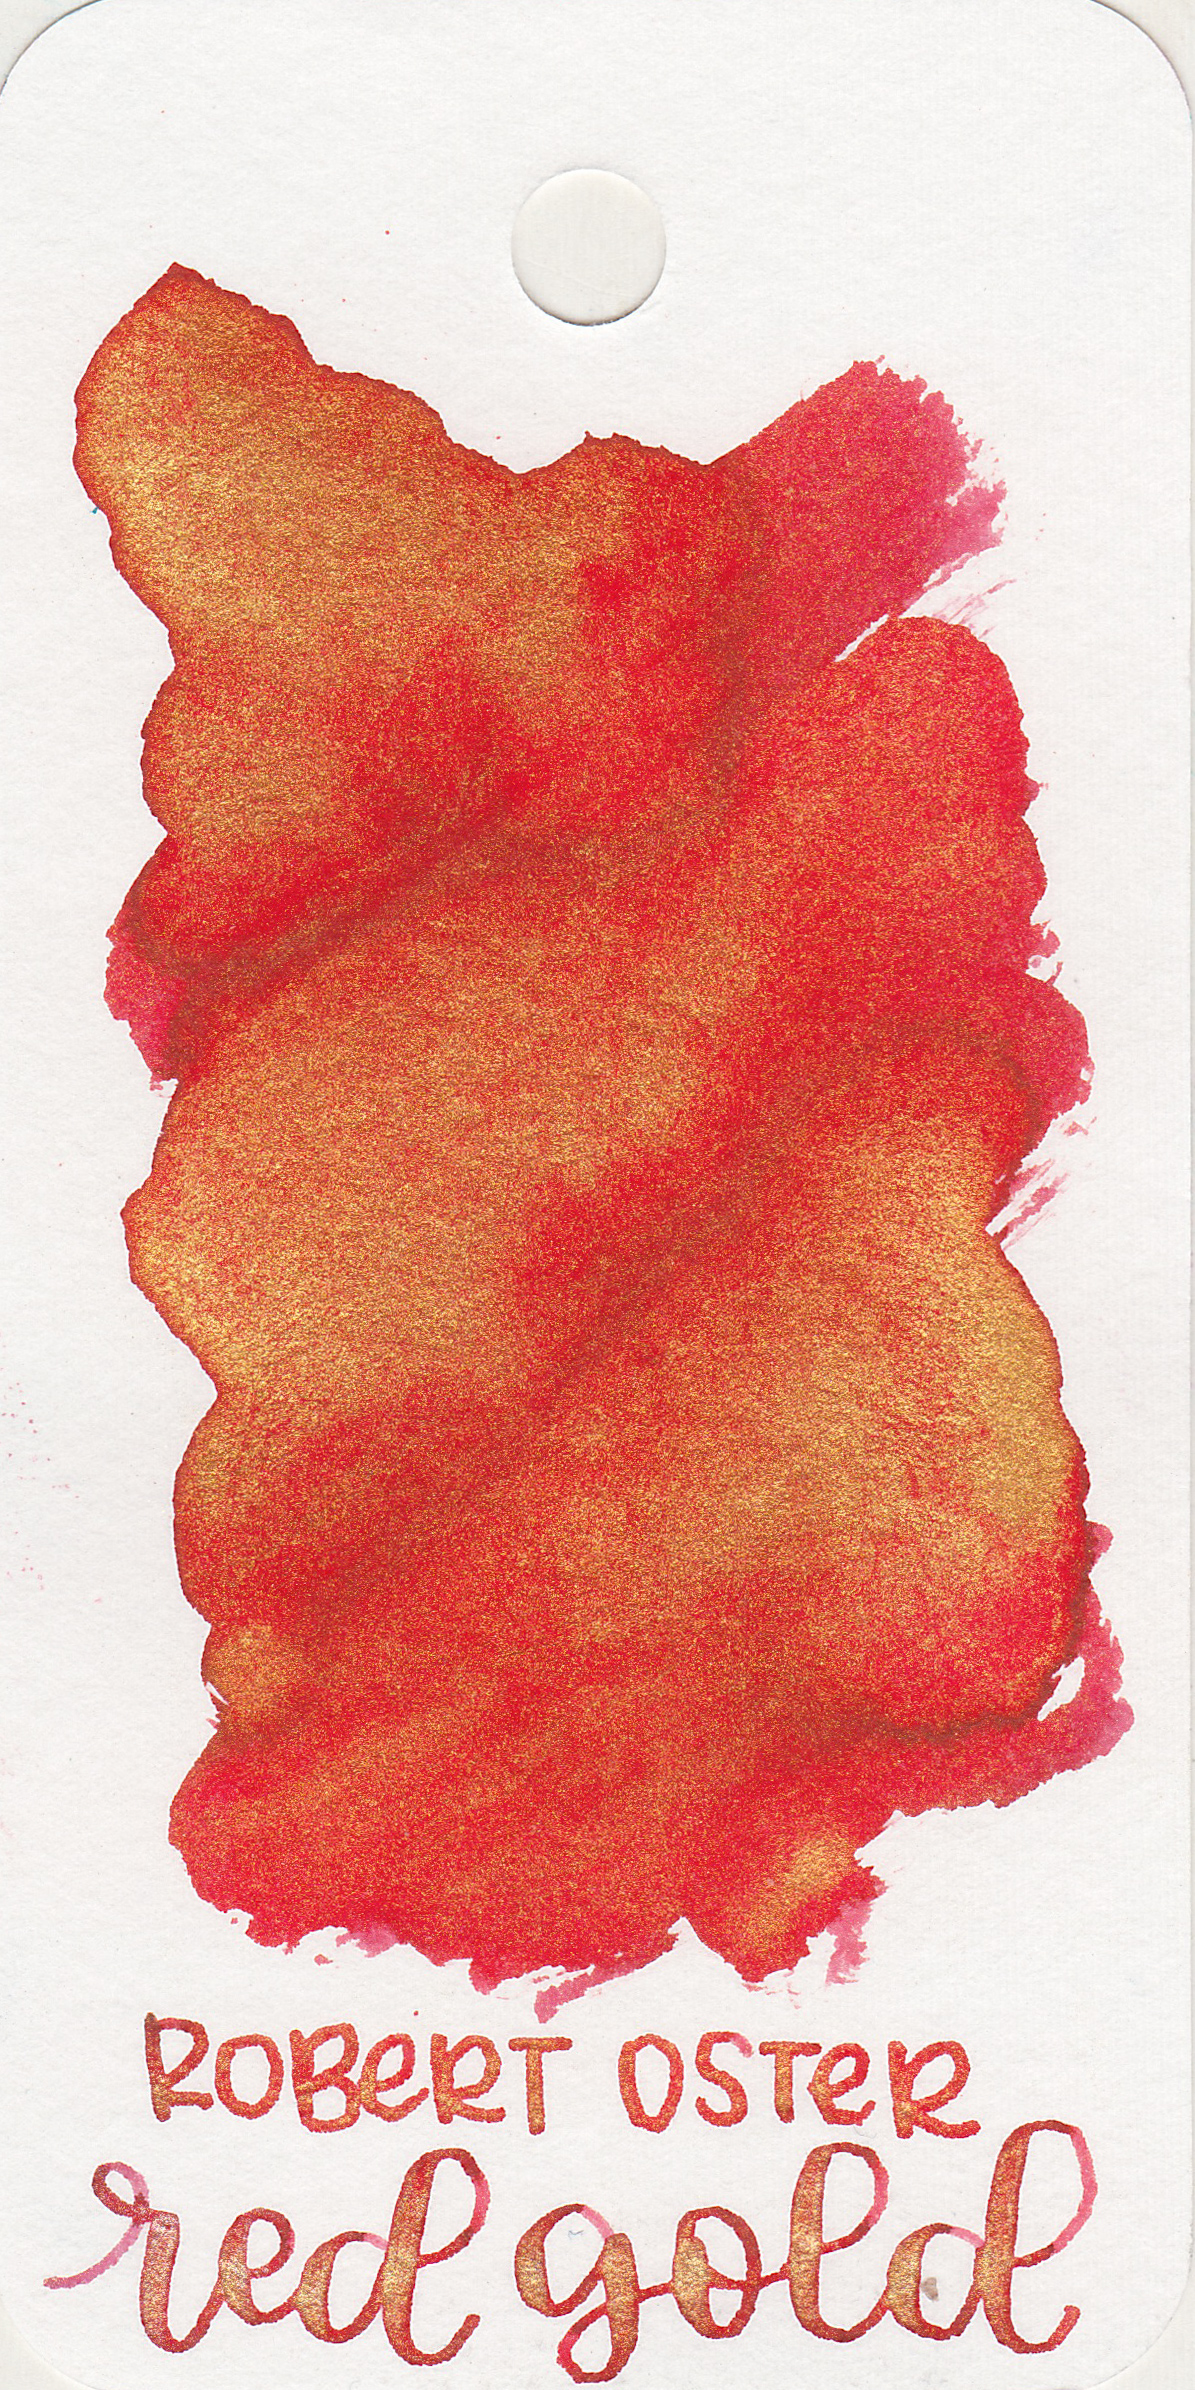 The color: - Red Gold is a bright vibrant red with gold shimmer.